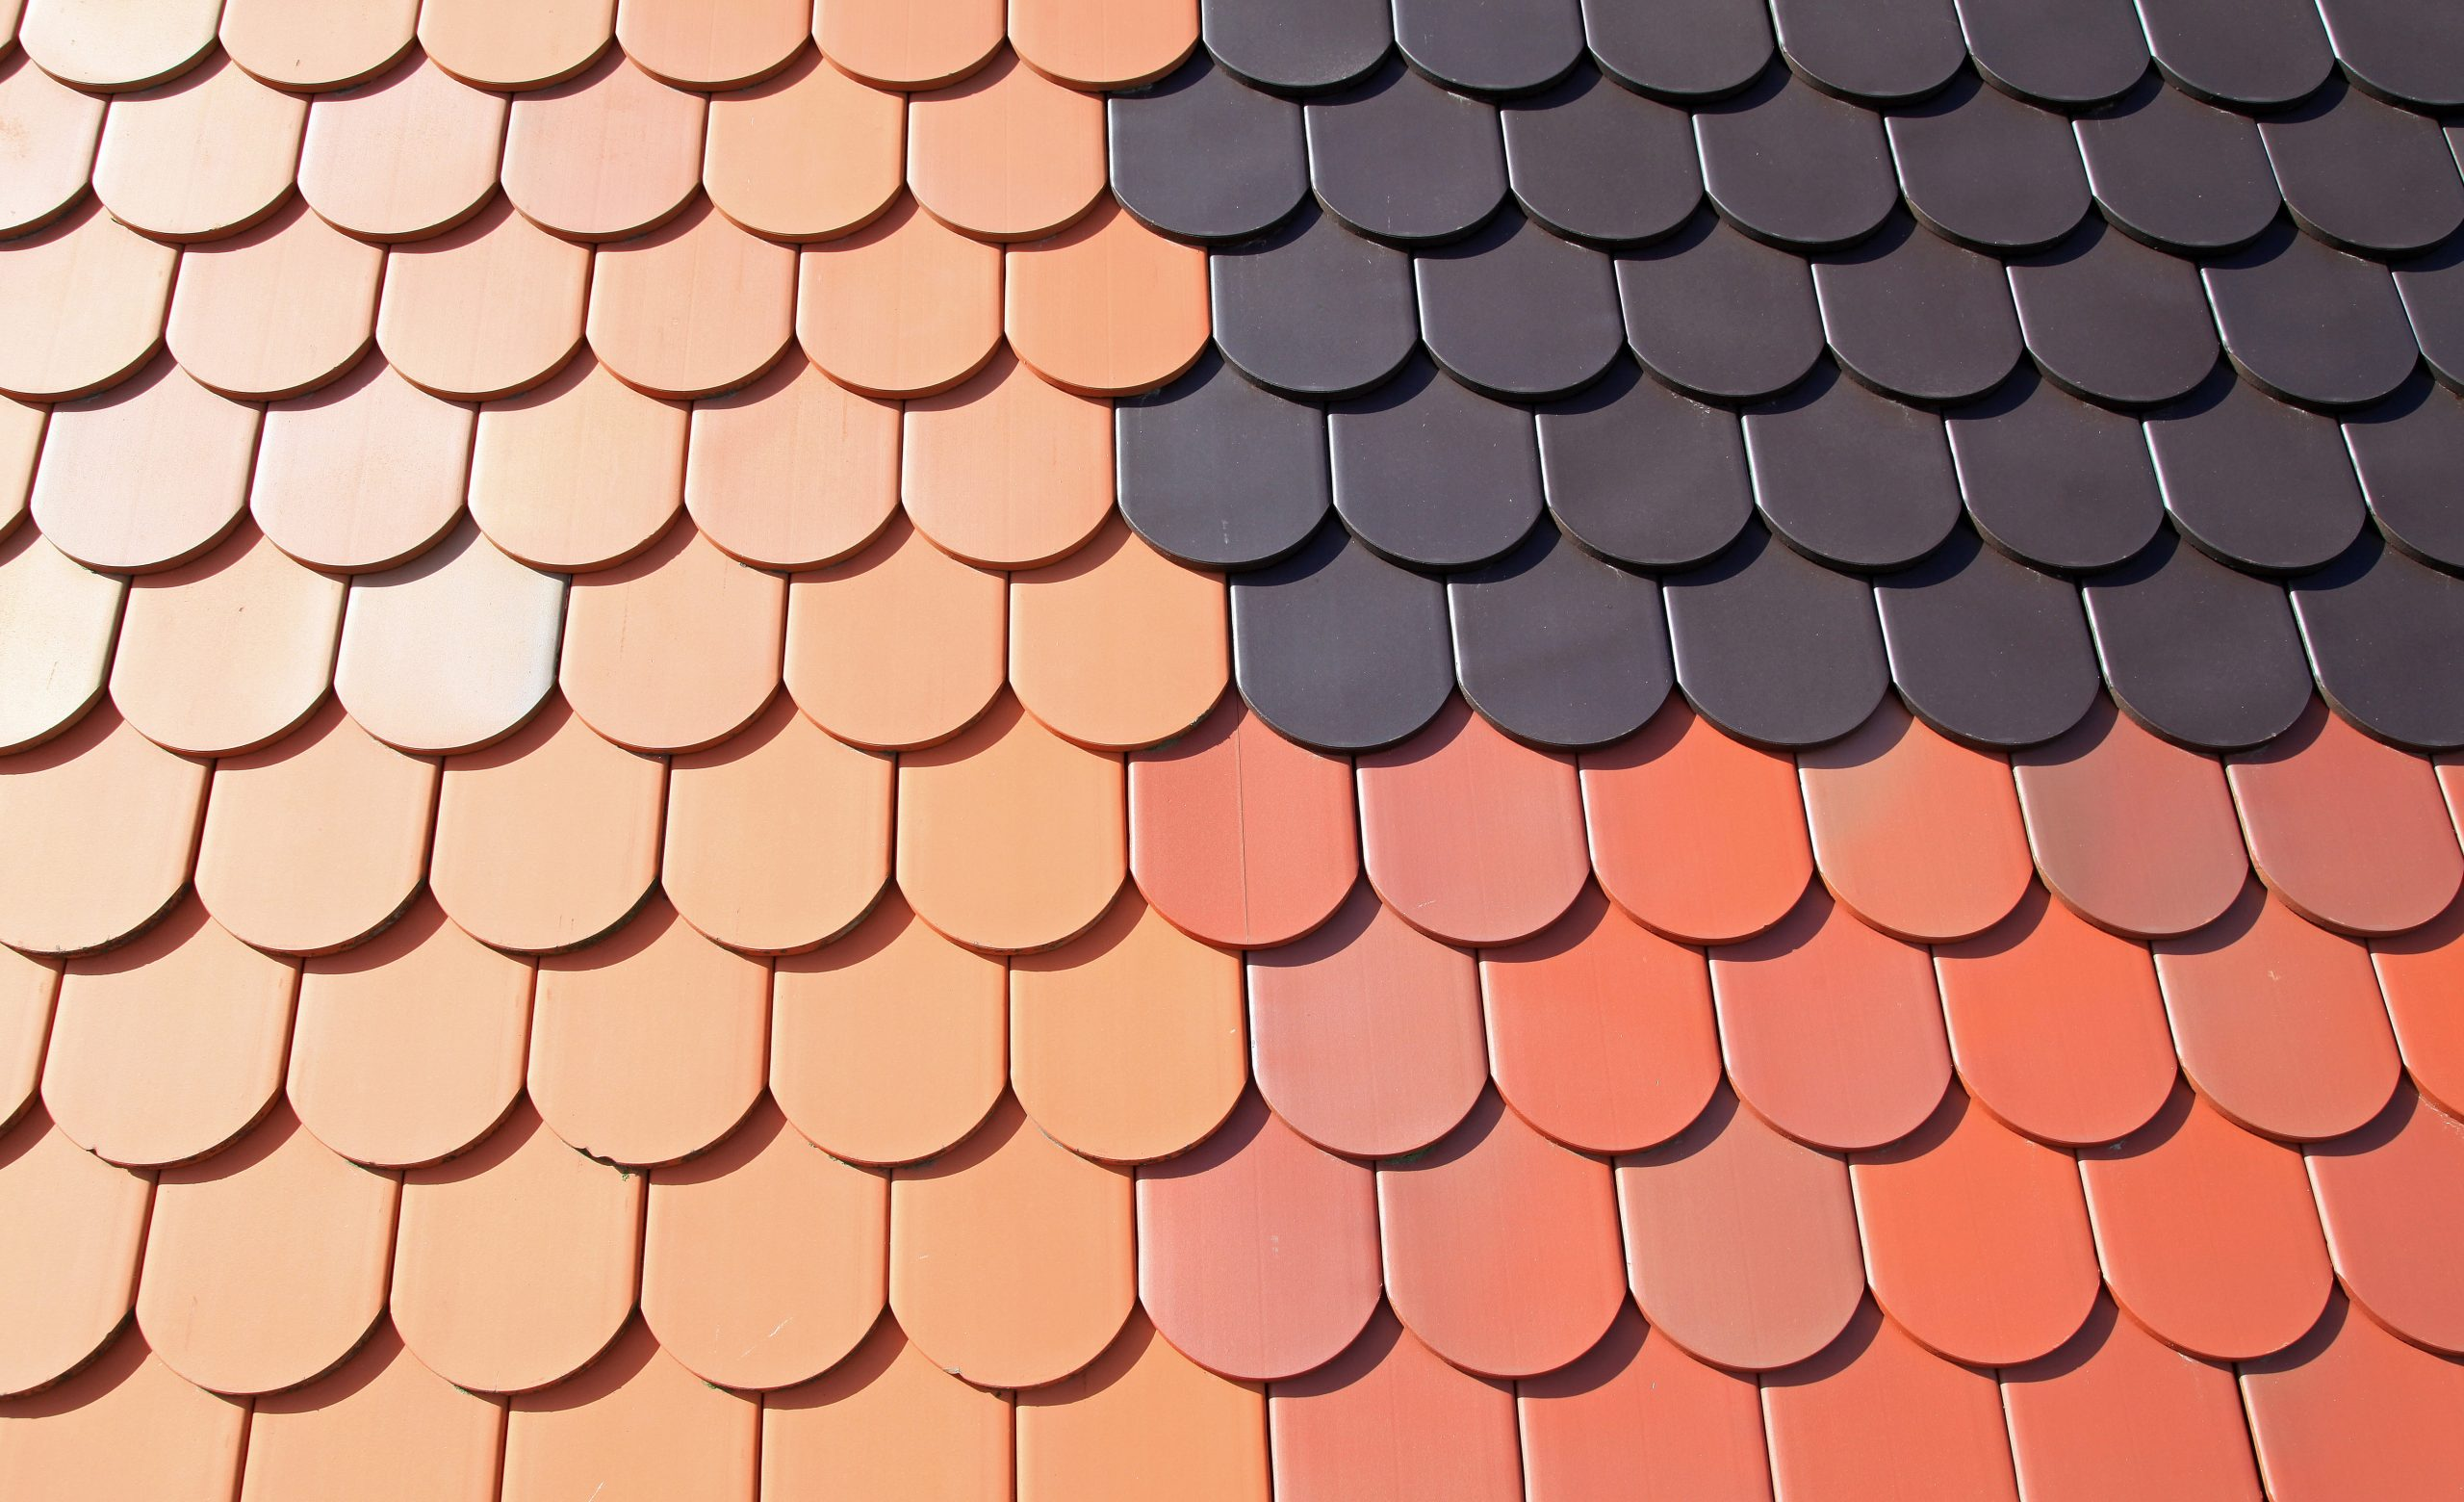 Dark vs. Light Coloured Roof Shingles